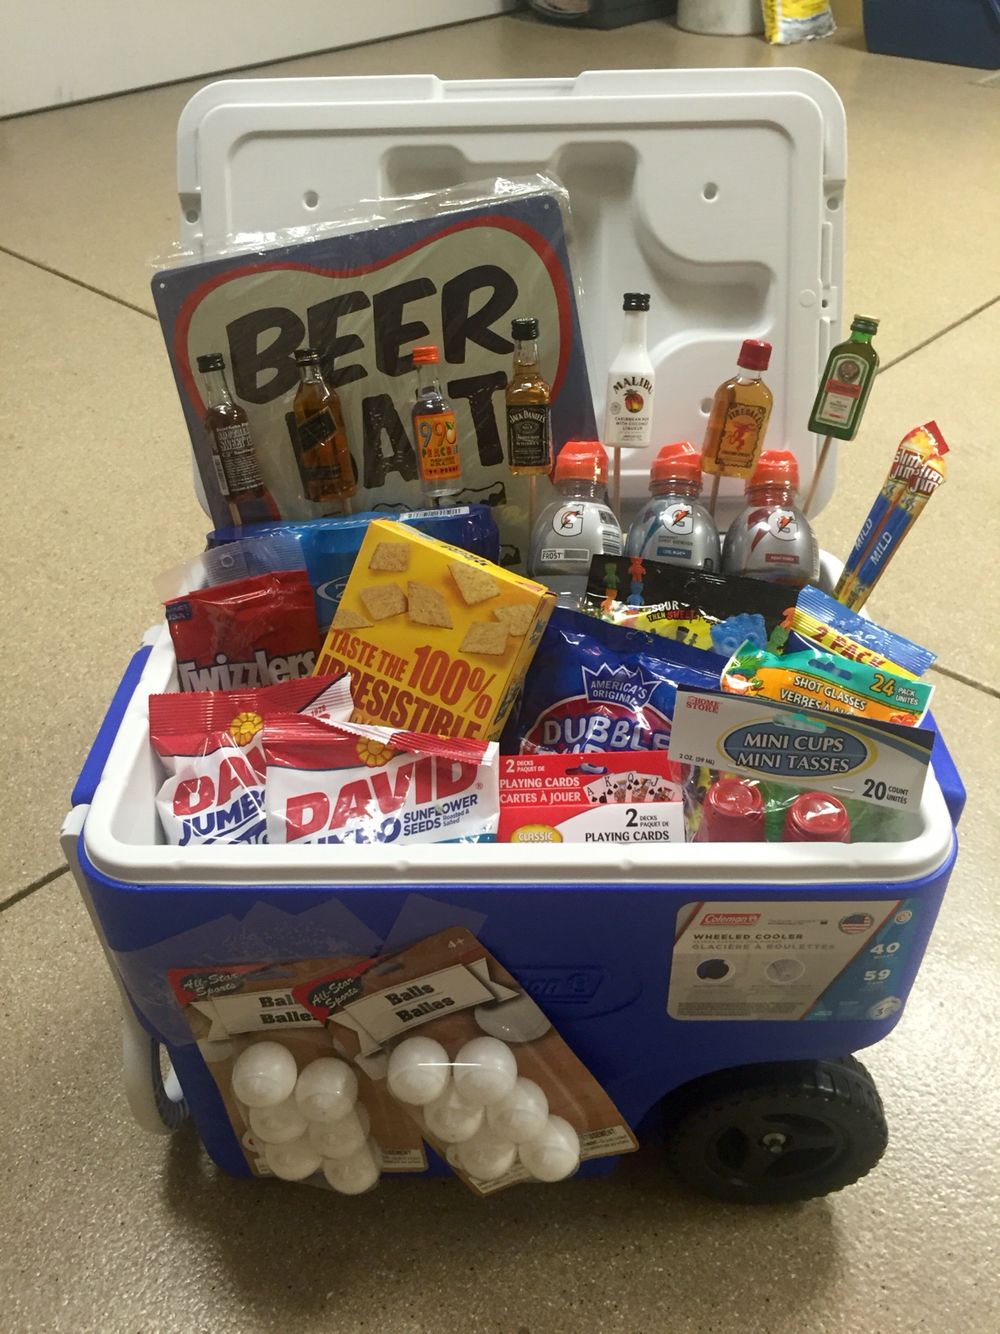 Ice chest gift basket 21st birthday for a guy my diys ice chest gift basket 21st birthday for a guy negle